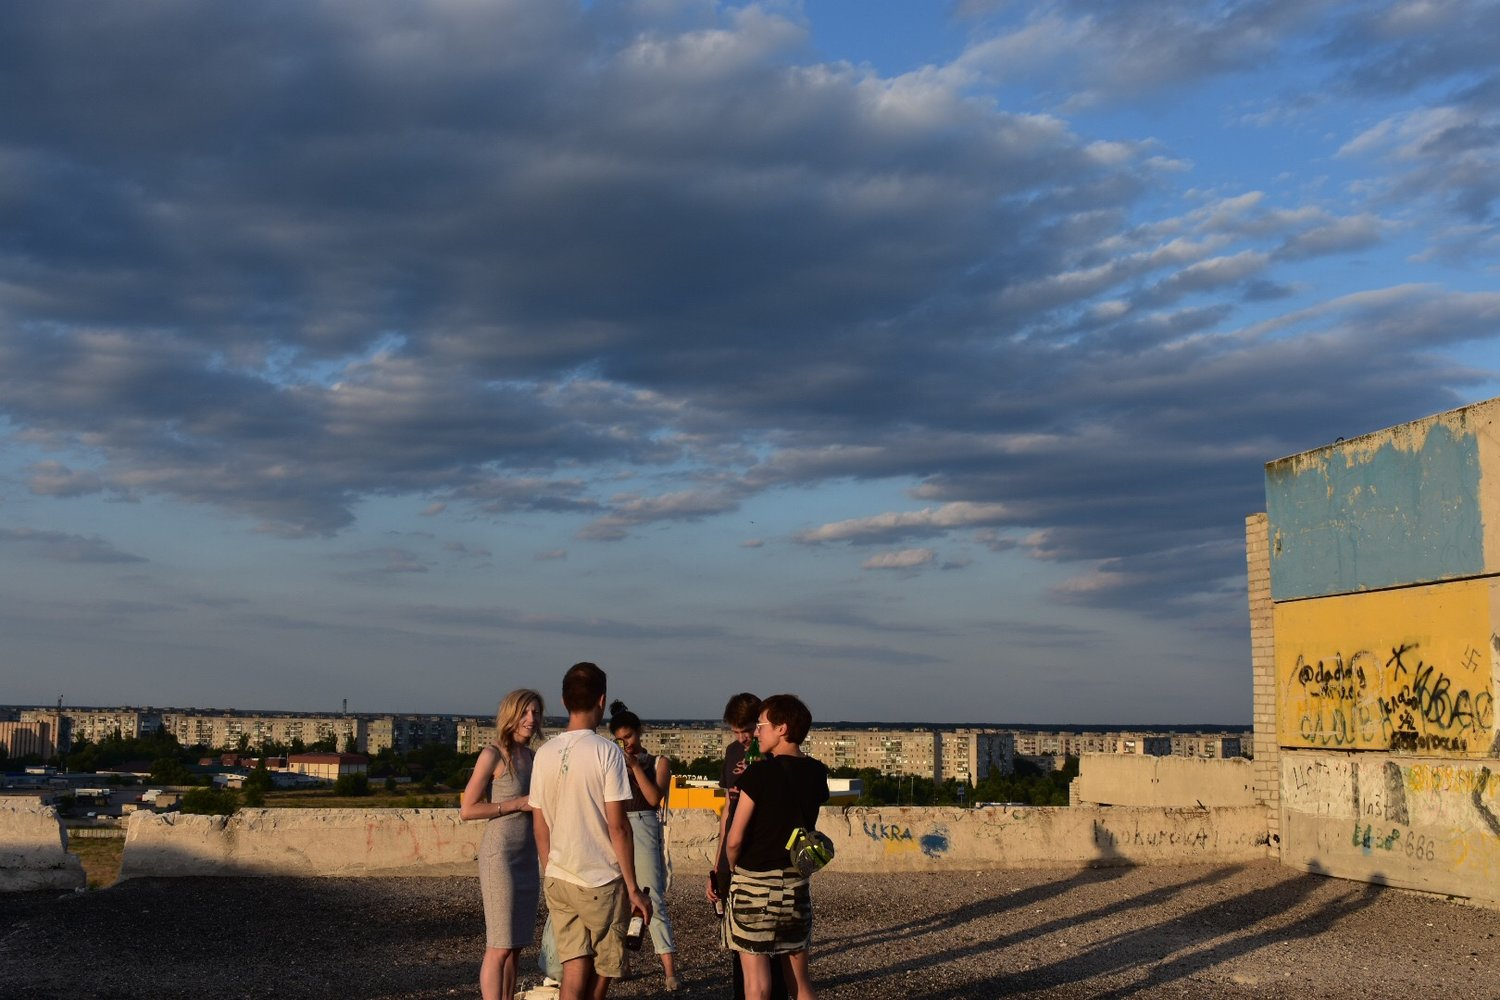 Rooftop gathering of Donbas Studies Summer School participants on the Audiotour of Severodonetsk by Anton Lapov